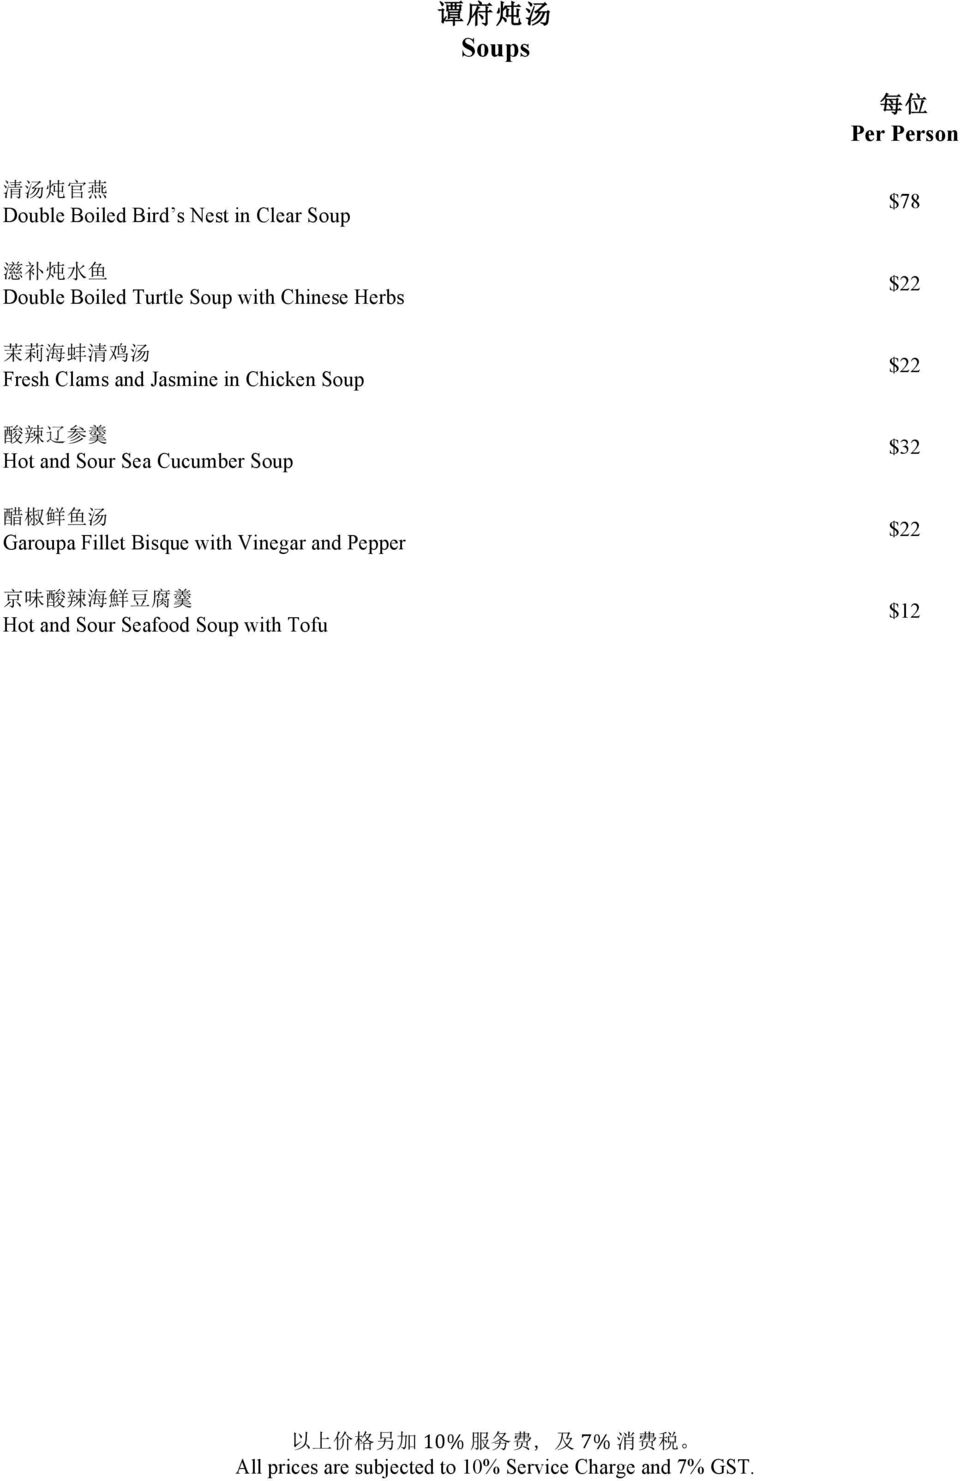 Chicken Soup 酸 辣 辽 参 羹 Hot and Sour Sea Cucumber Soup 醋 椒 鲜 鱼 汤 Garoupa Fillet Bisque with